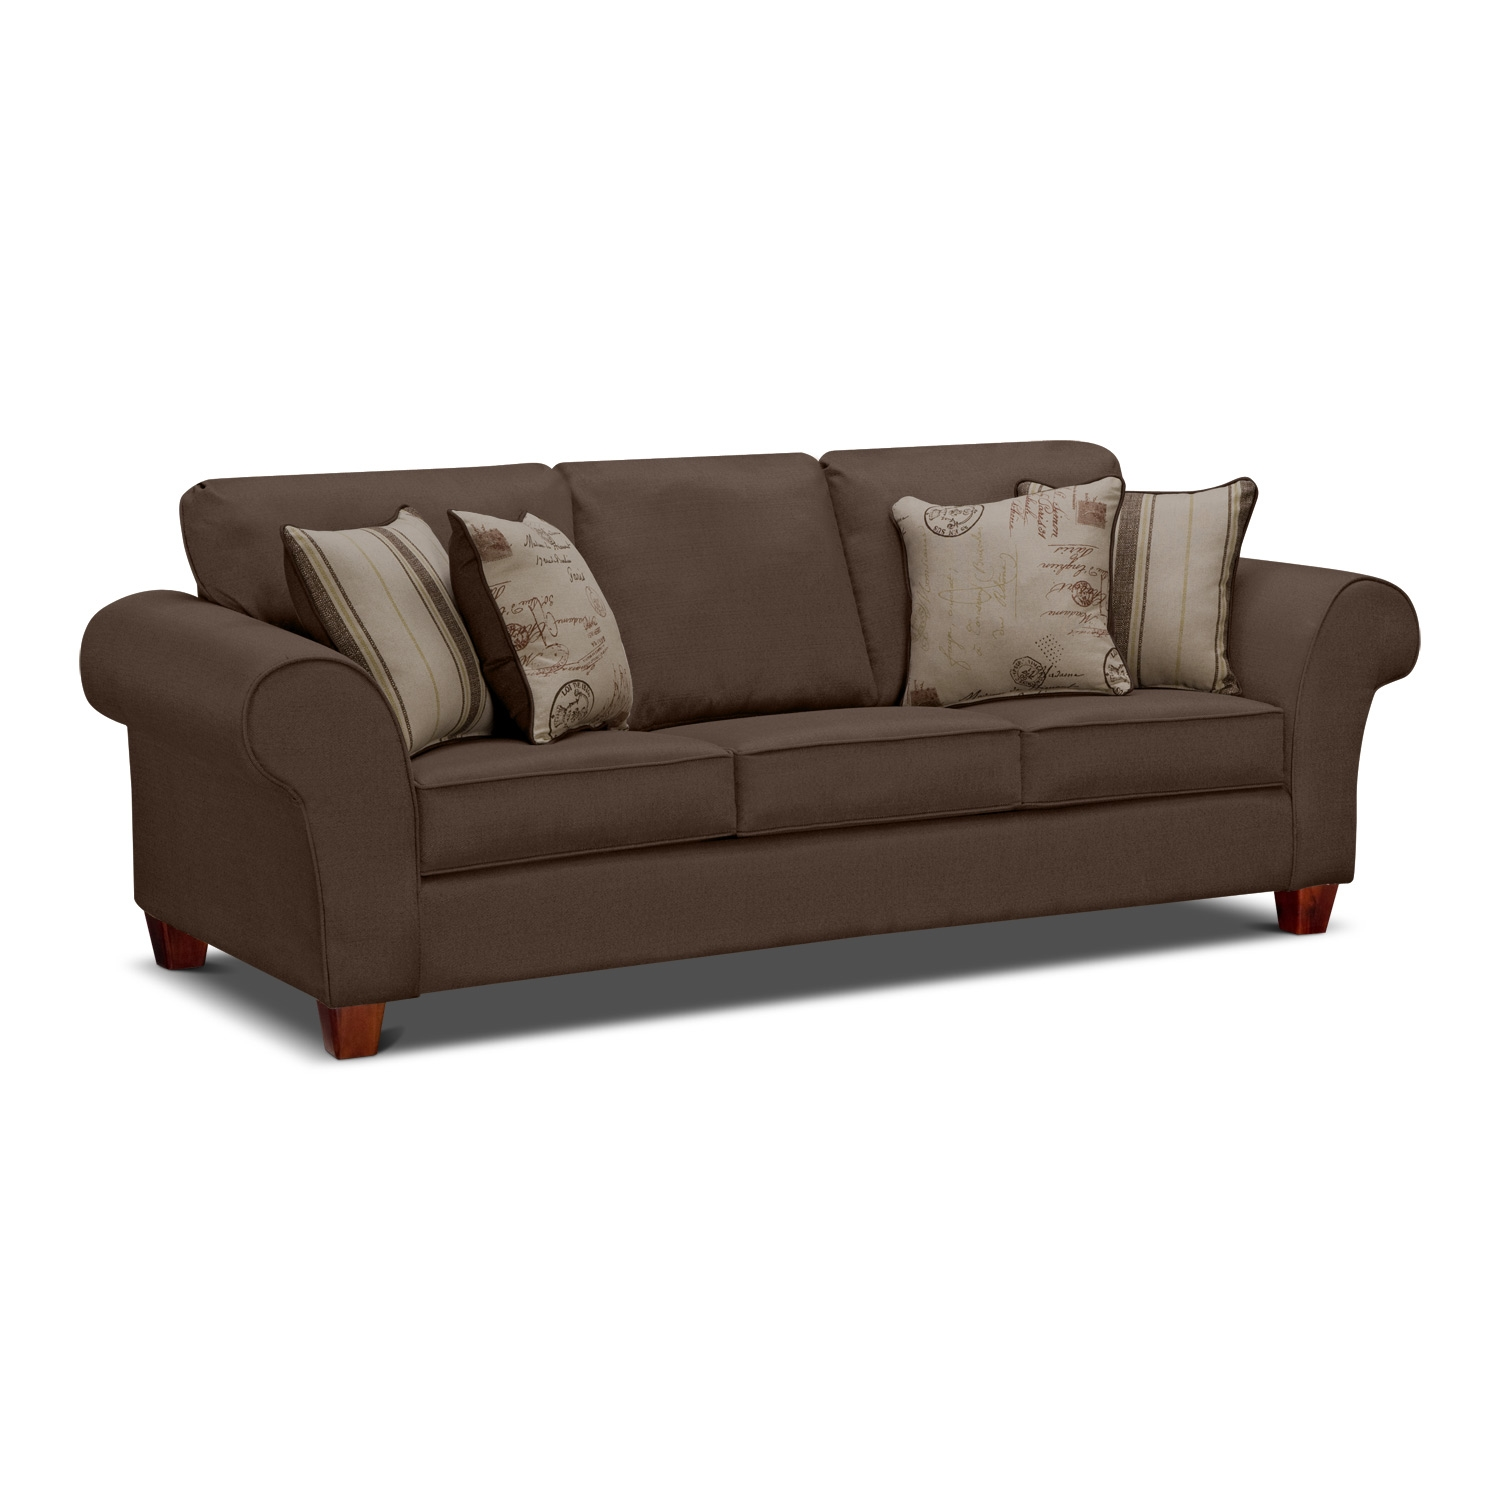 Sofas on sale ikea couch sofa ideas interior design for Couches and sofas for sale